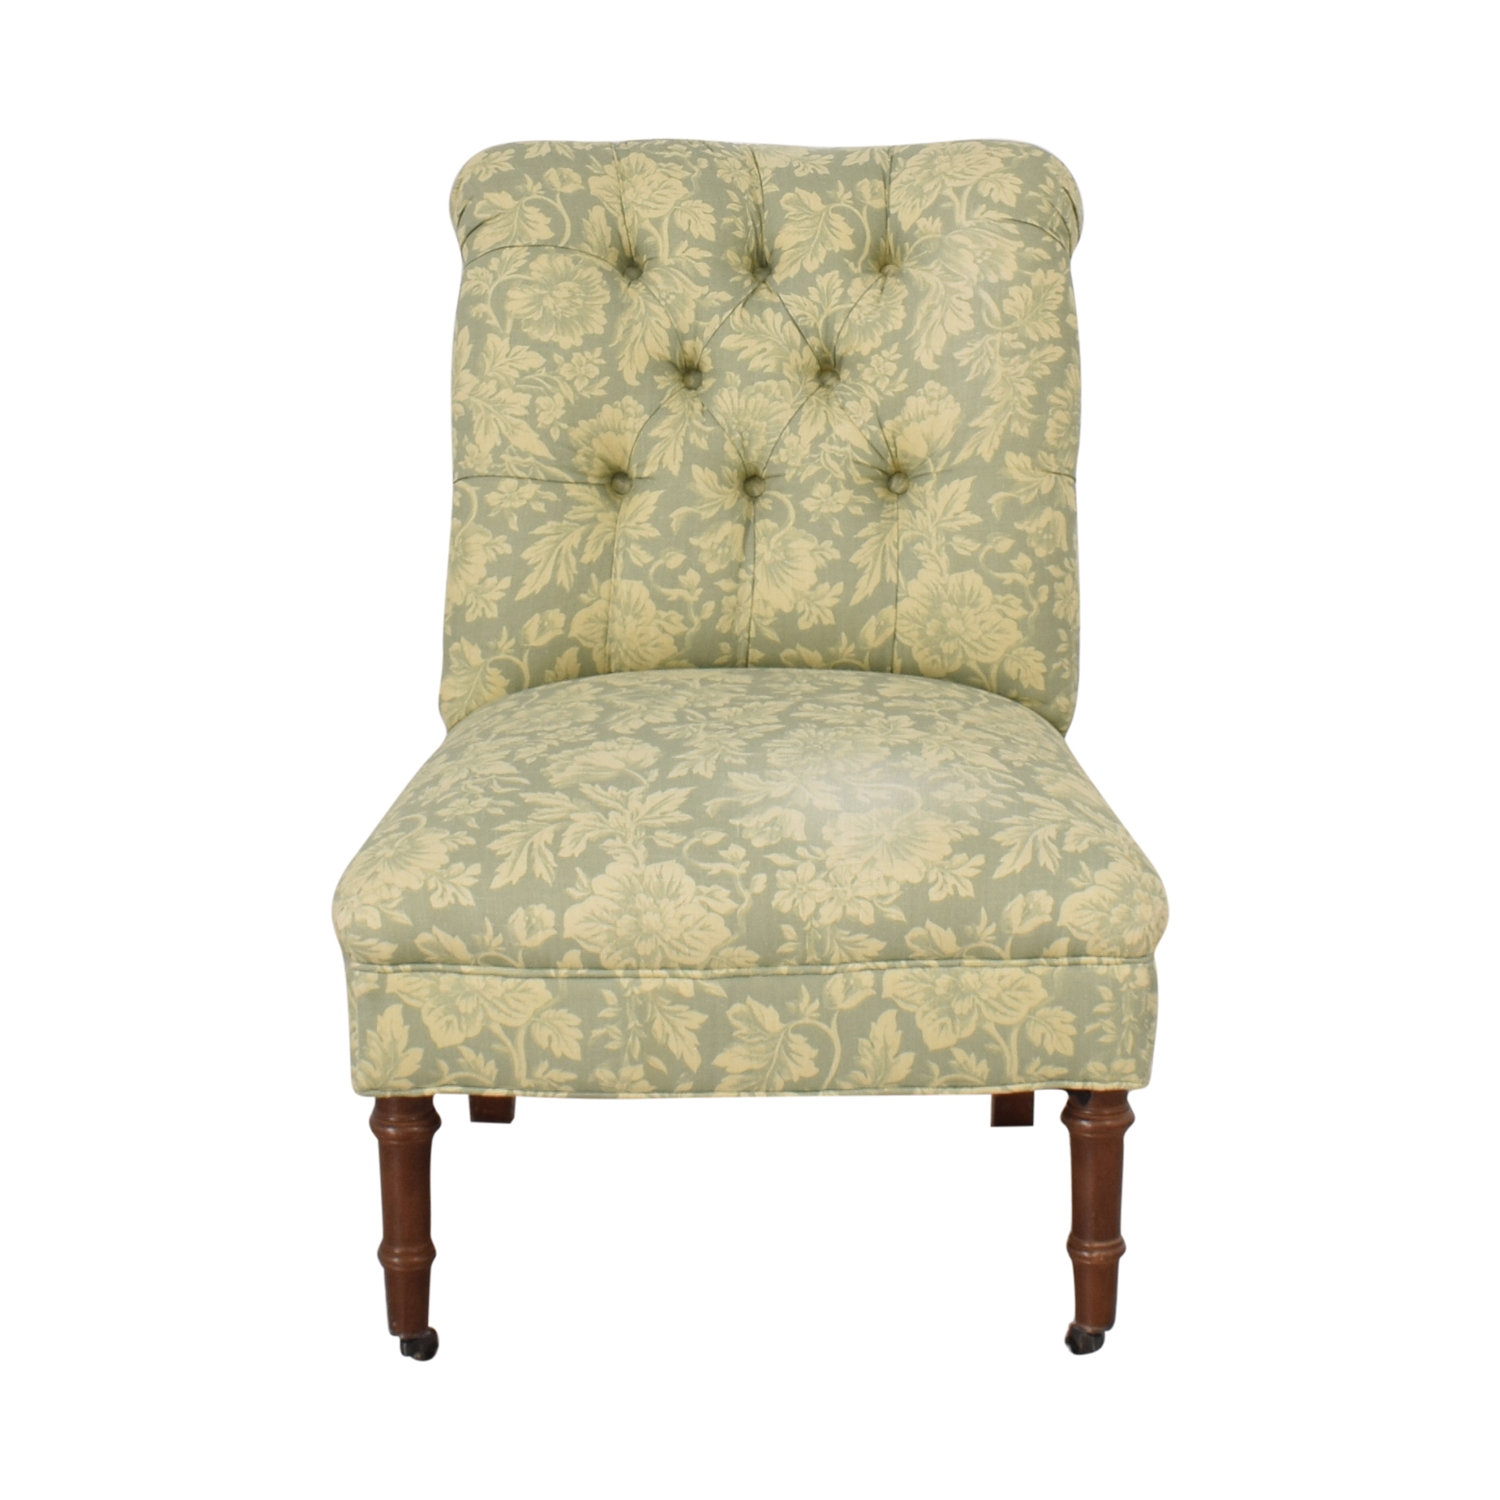 shop Lee Industries Armless Tufted Chair Lee Industries Accent Chairs